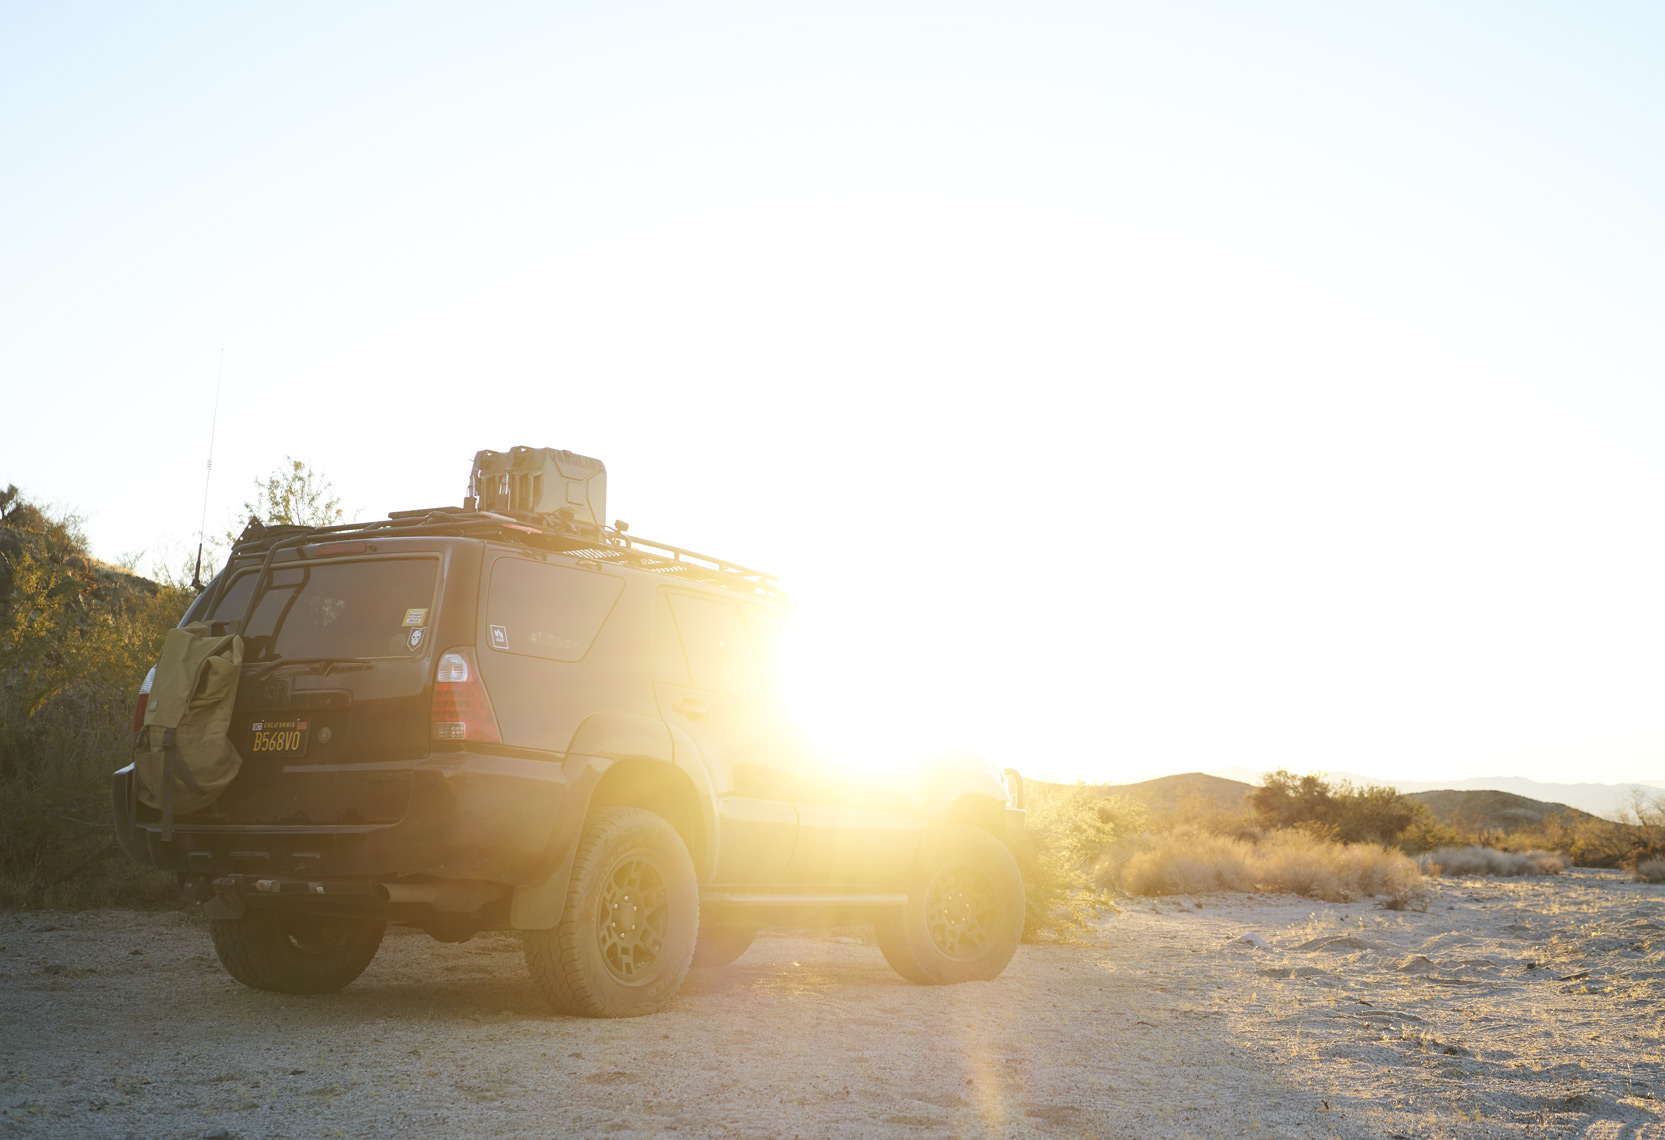 Toyota 4Runner at sunset on the Mojave Road Sean Dagen Photography